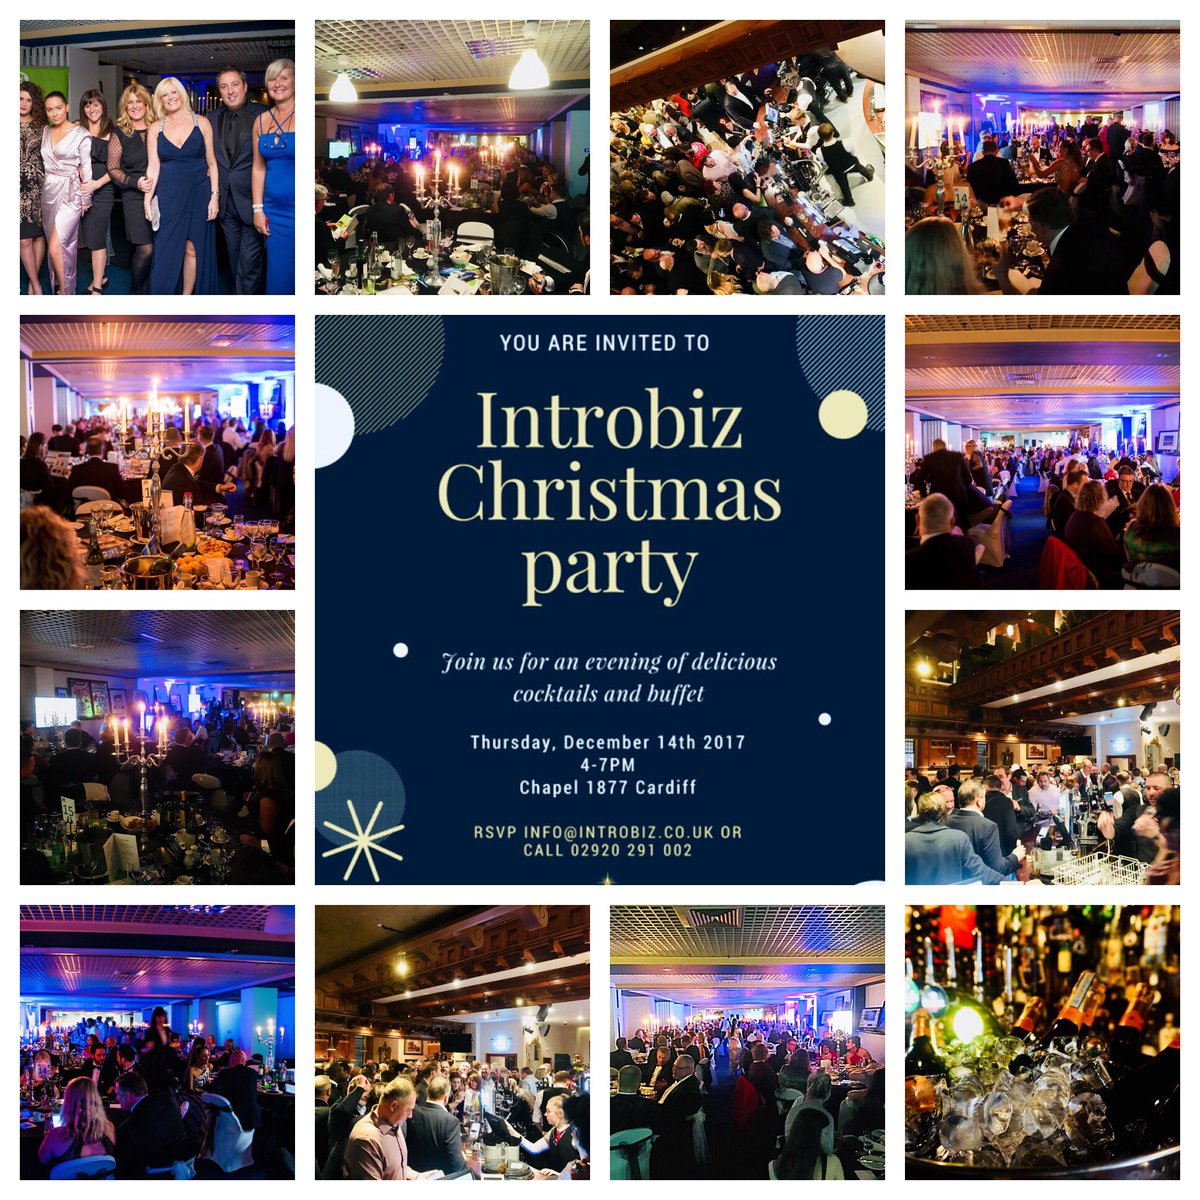 If you missed this month&#39;s #Introbiz #VIP #AfterParty &amp; #BeaujolaisDay with over 500 #businesses join us at our Christmas Party on Thursday 14th December 4-7pm @chapel1877bar #Cardiff all visitors are most welcome to attend tickets £20.00  http://www. introbiz.co.uk/events/  &nbsp;  <br>http://pic.twitter.com/wLmgX89Ps4